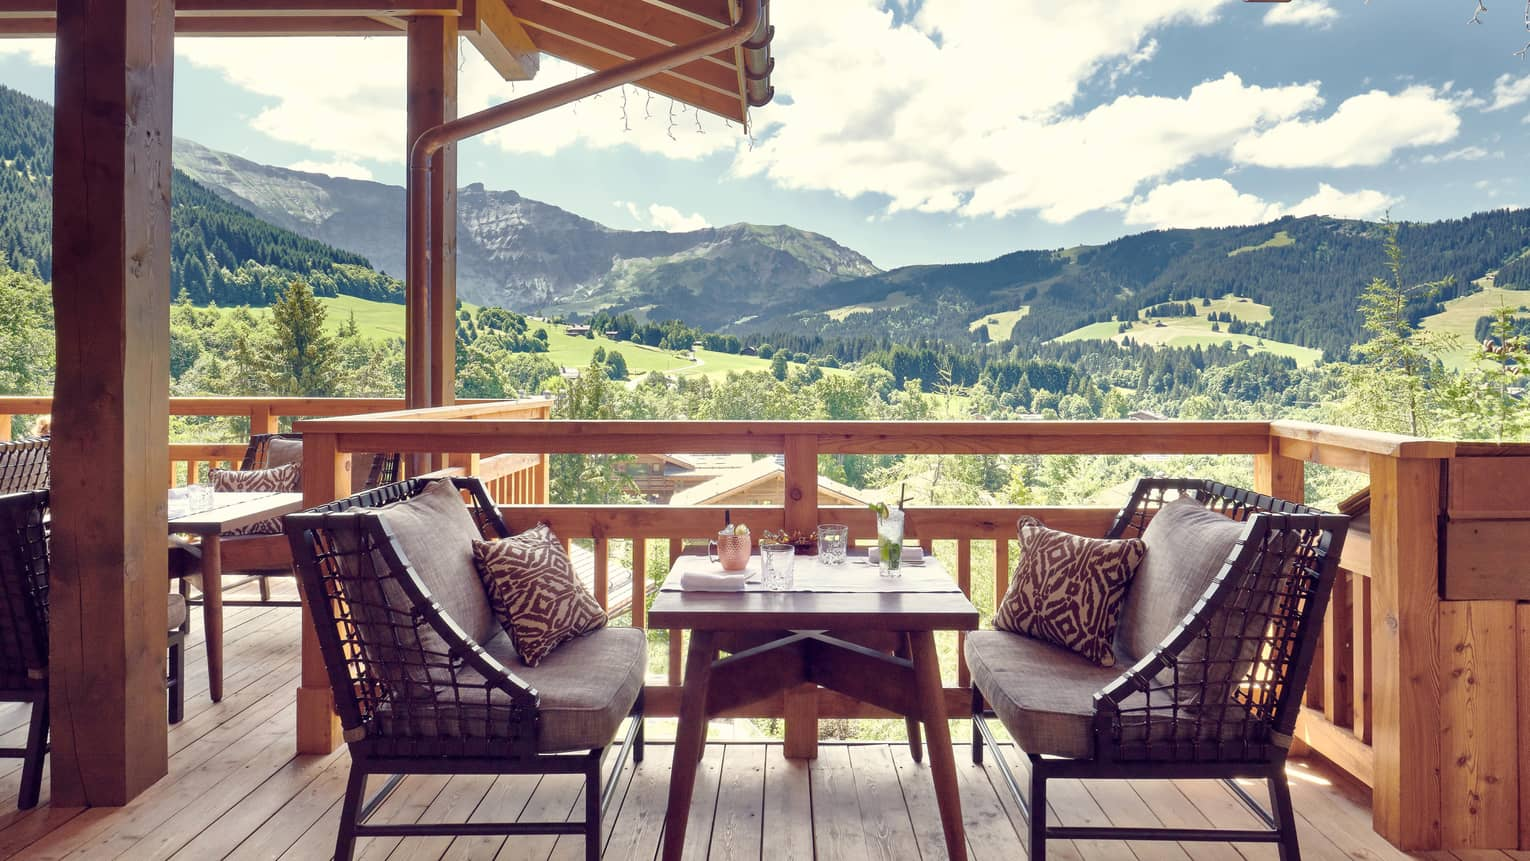 Two cushioned benches with table in middle on wooden terrace with mountain views